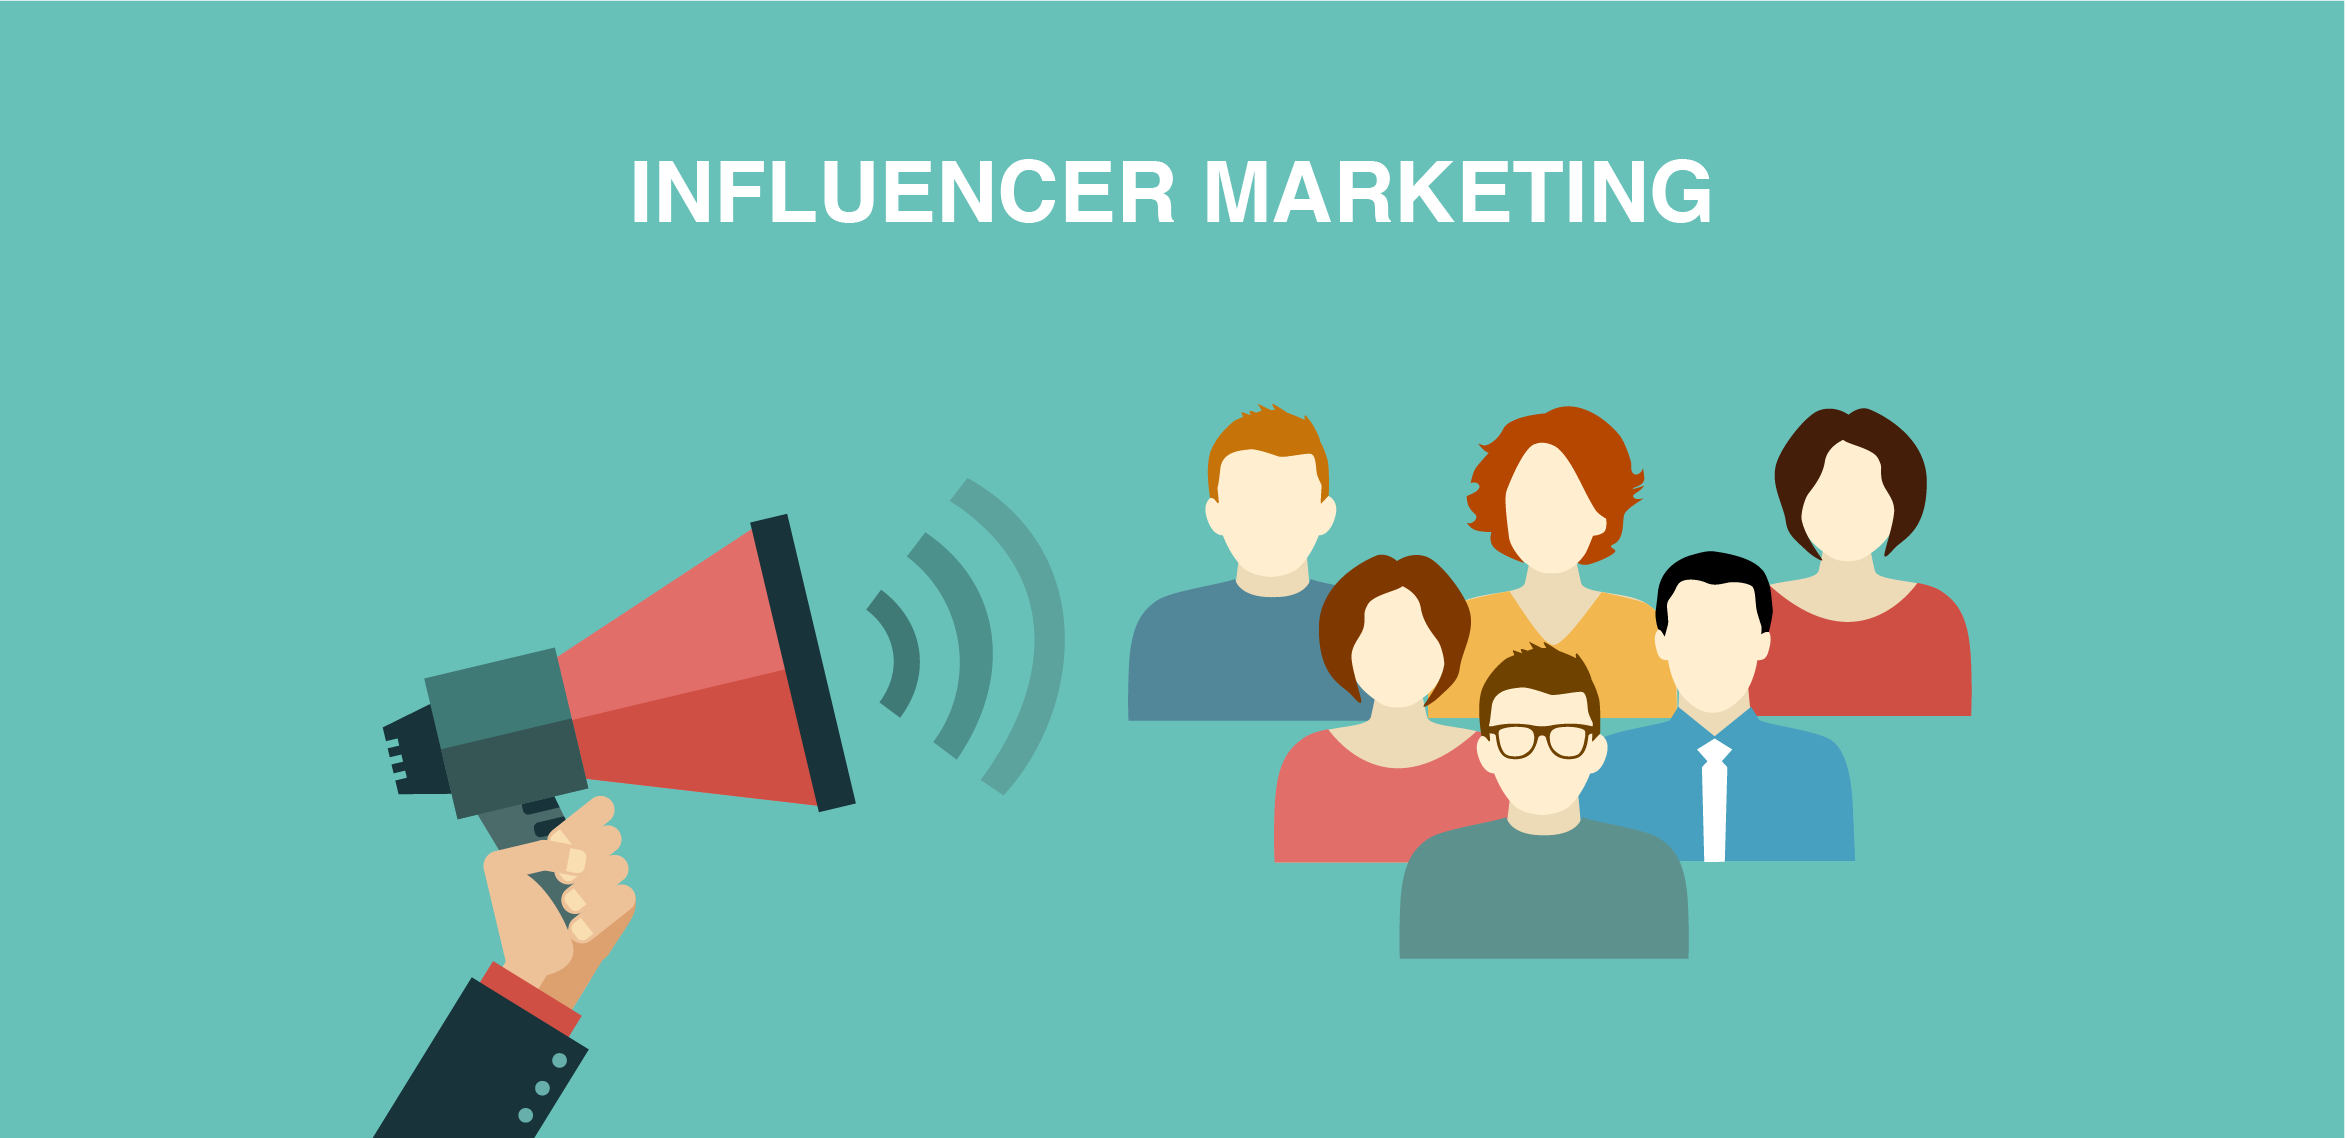 Influencer Marketing means everything in social media management